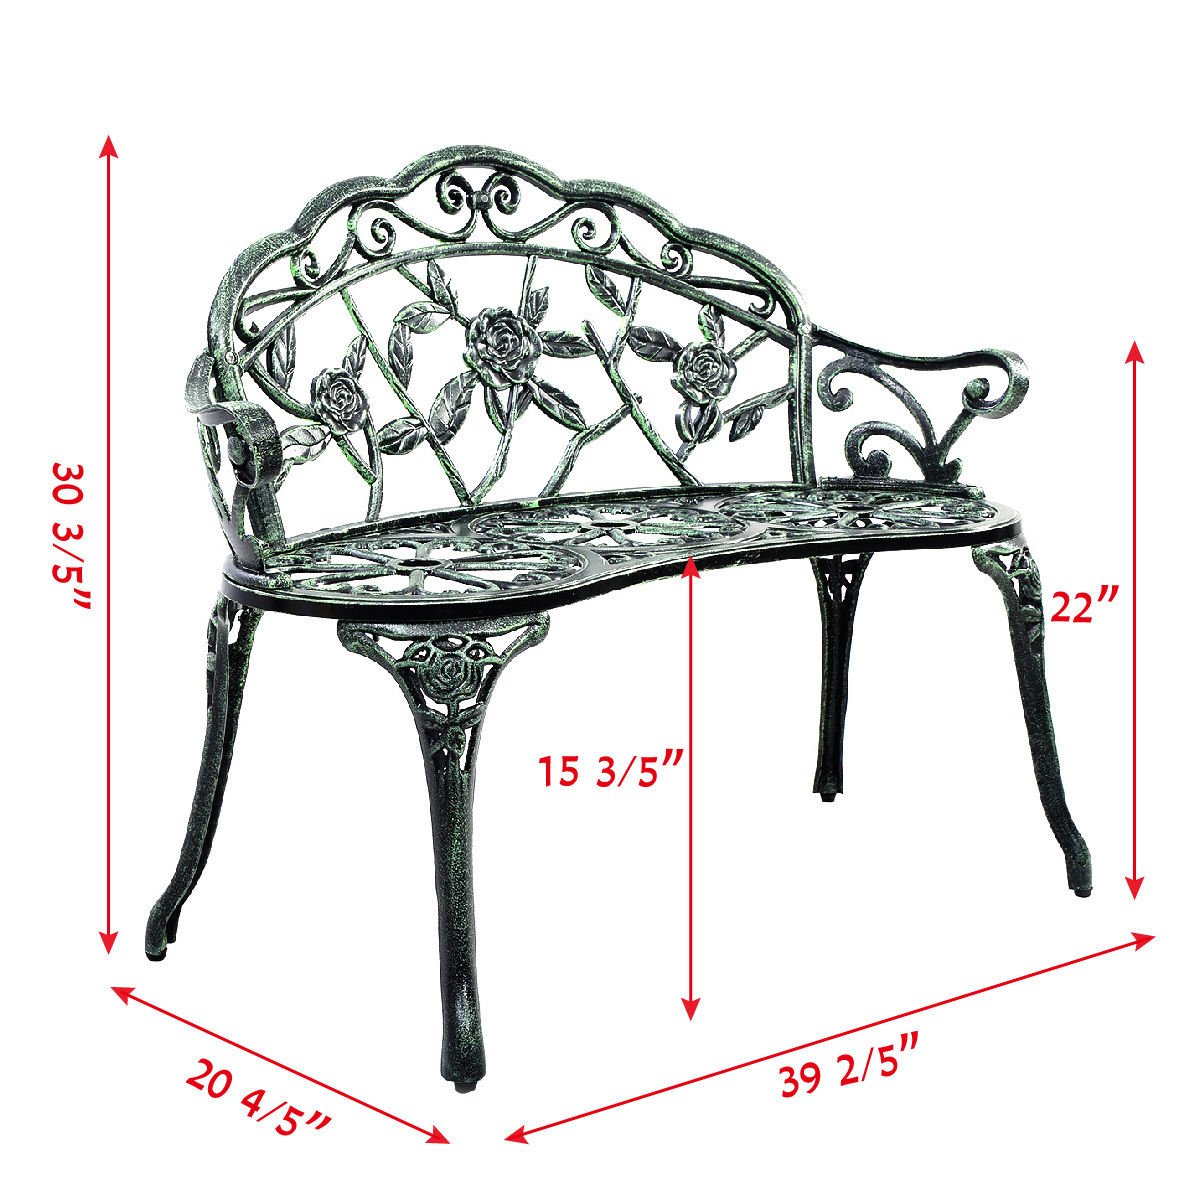 Giantex Patio Garden Bench Chair Style Porch Cast Aluminum Outdoor Rose Antique Green 1